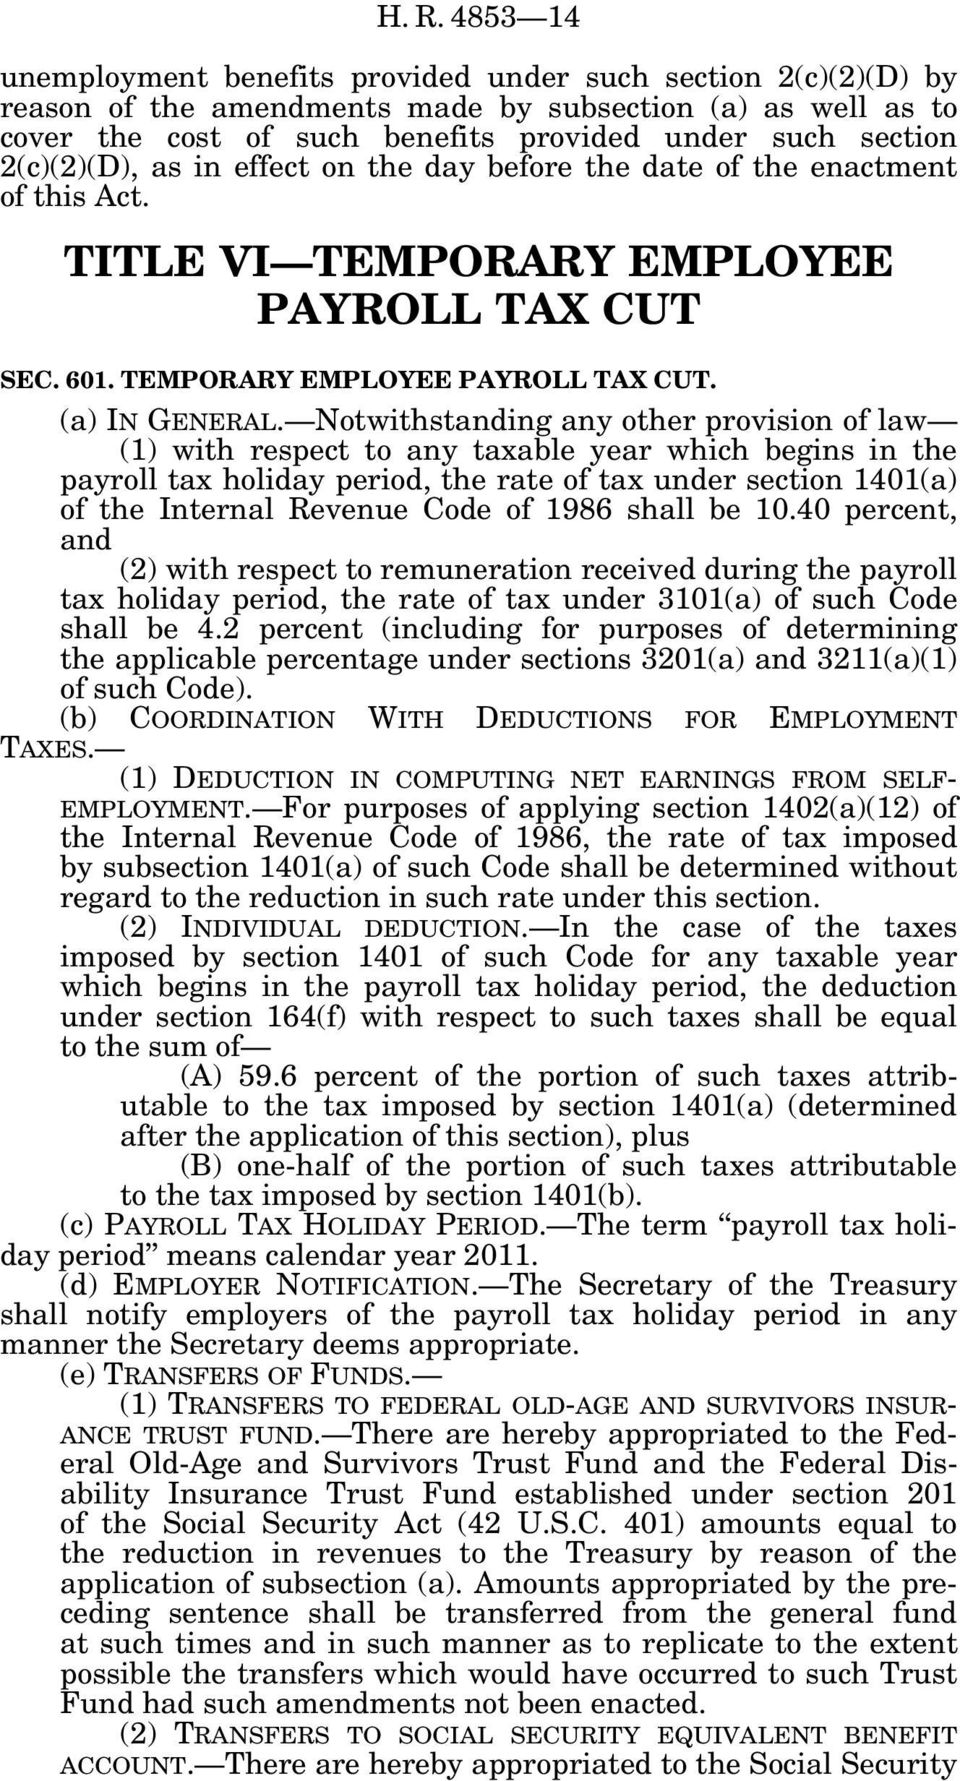 Notwithstanding any other provision of law (1) with respect to any taxable year which begins in the payroll tax holiday period, the rate of tax under section 1401(a) of the Internal Revenue Code of